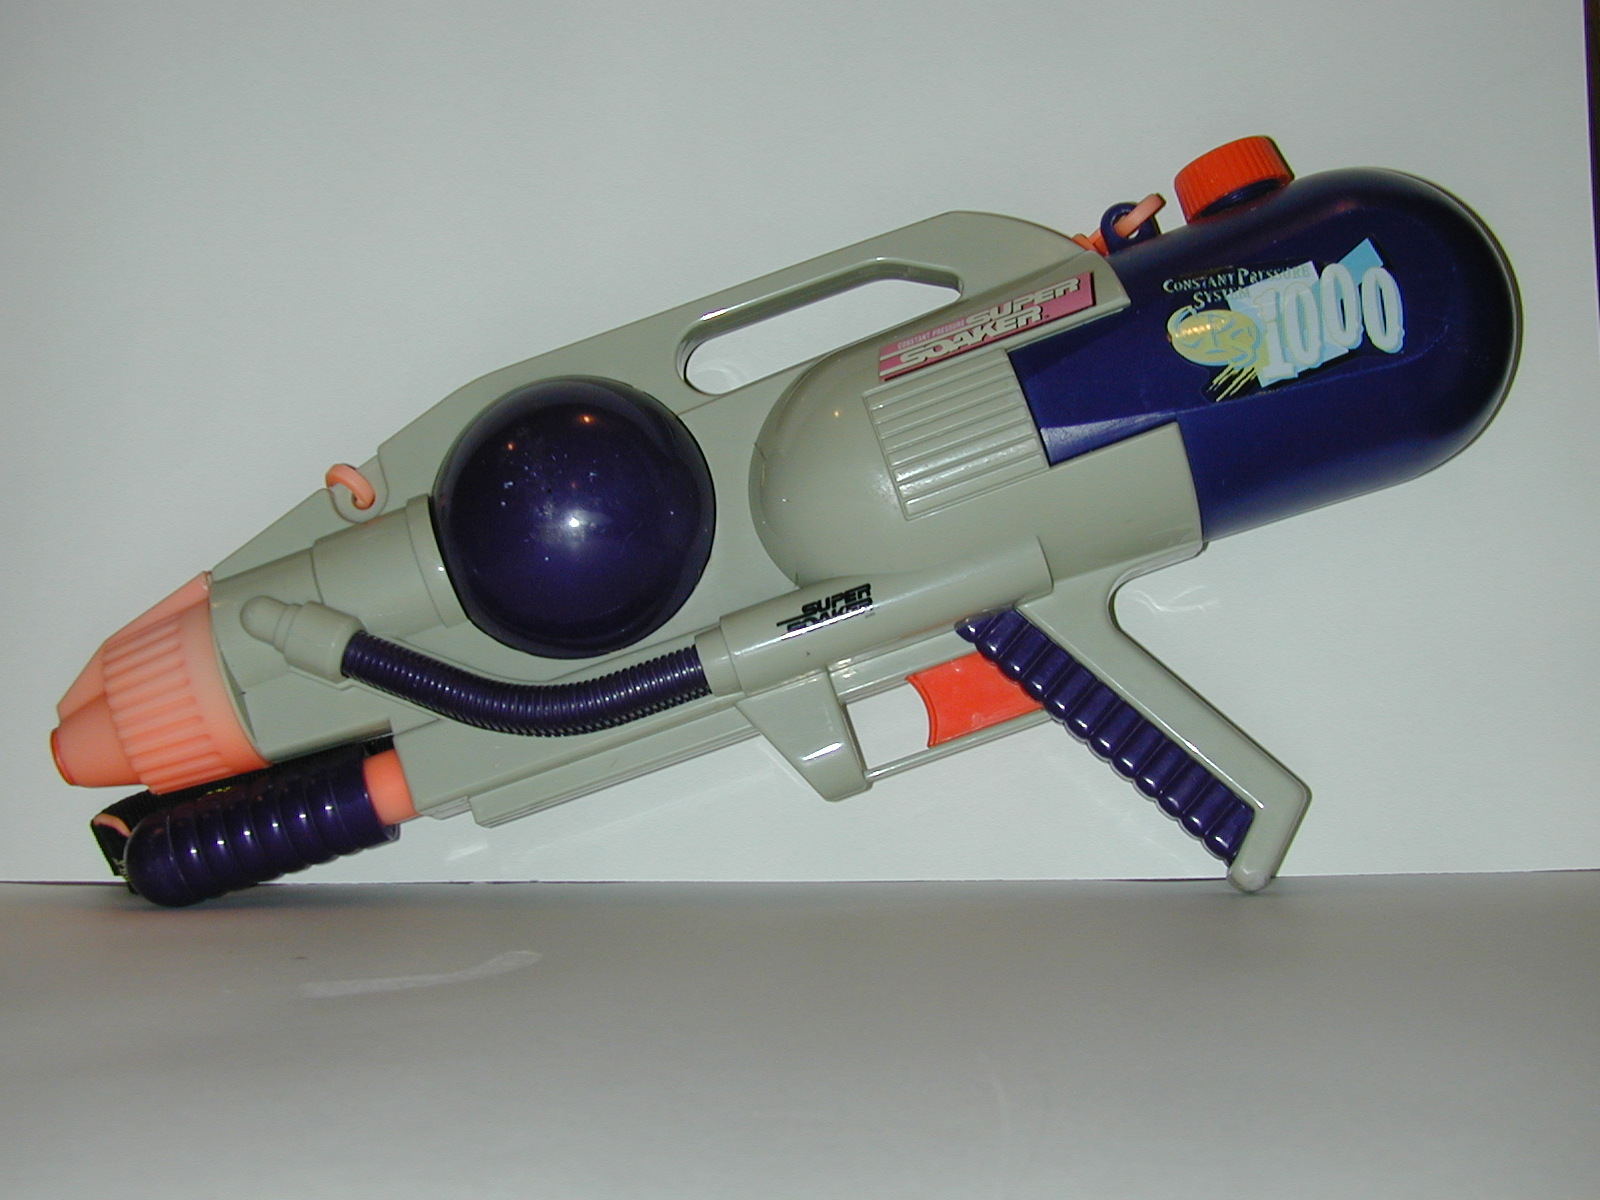 Cps 1000 Nerf Wiki Fandom Powered By Wikia